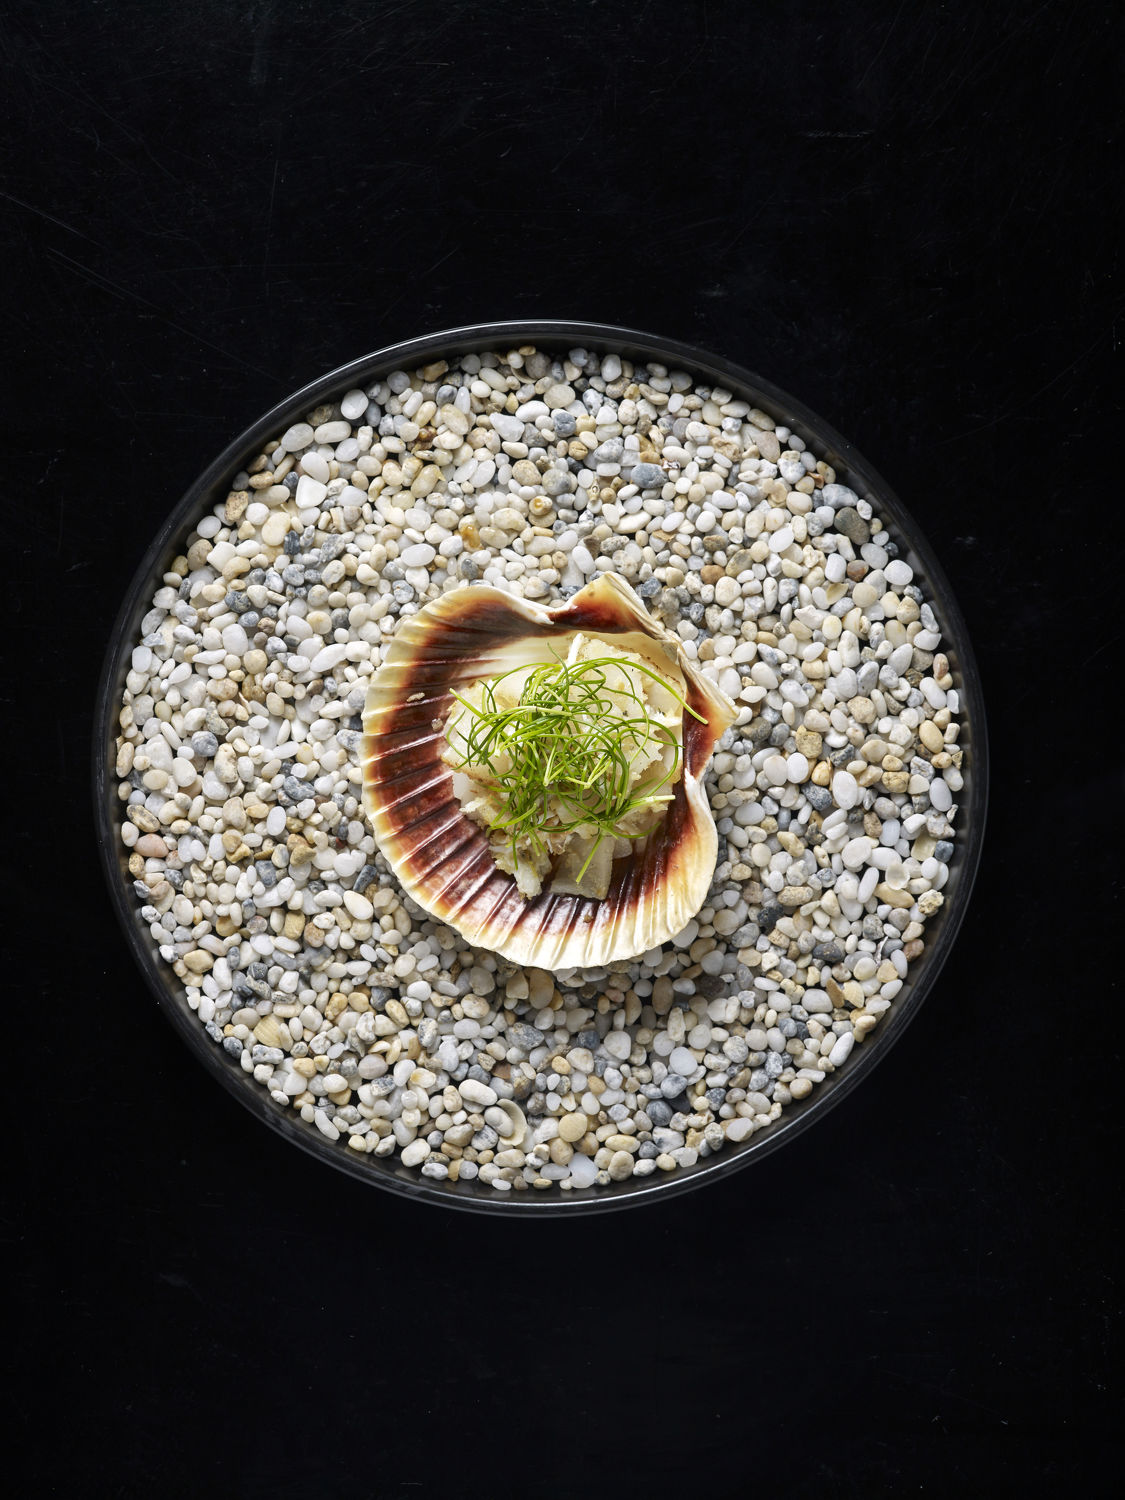 Rescoldo Mud Crab and Scallop with Garlic and Parsley crumb - THE EDEG SINGAPORE